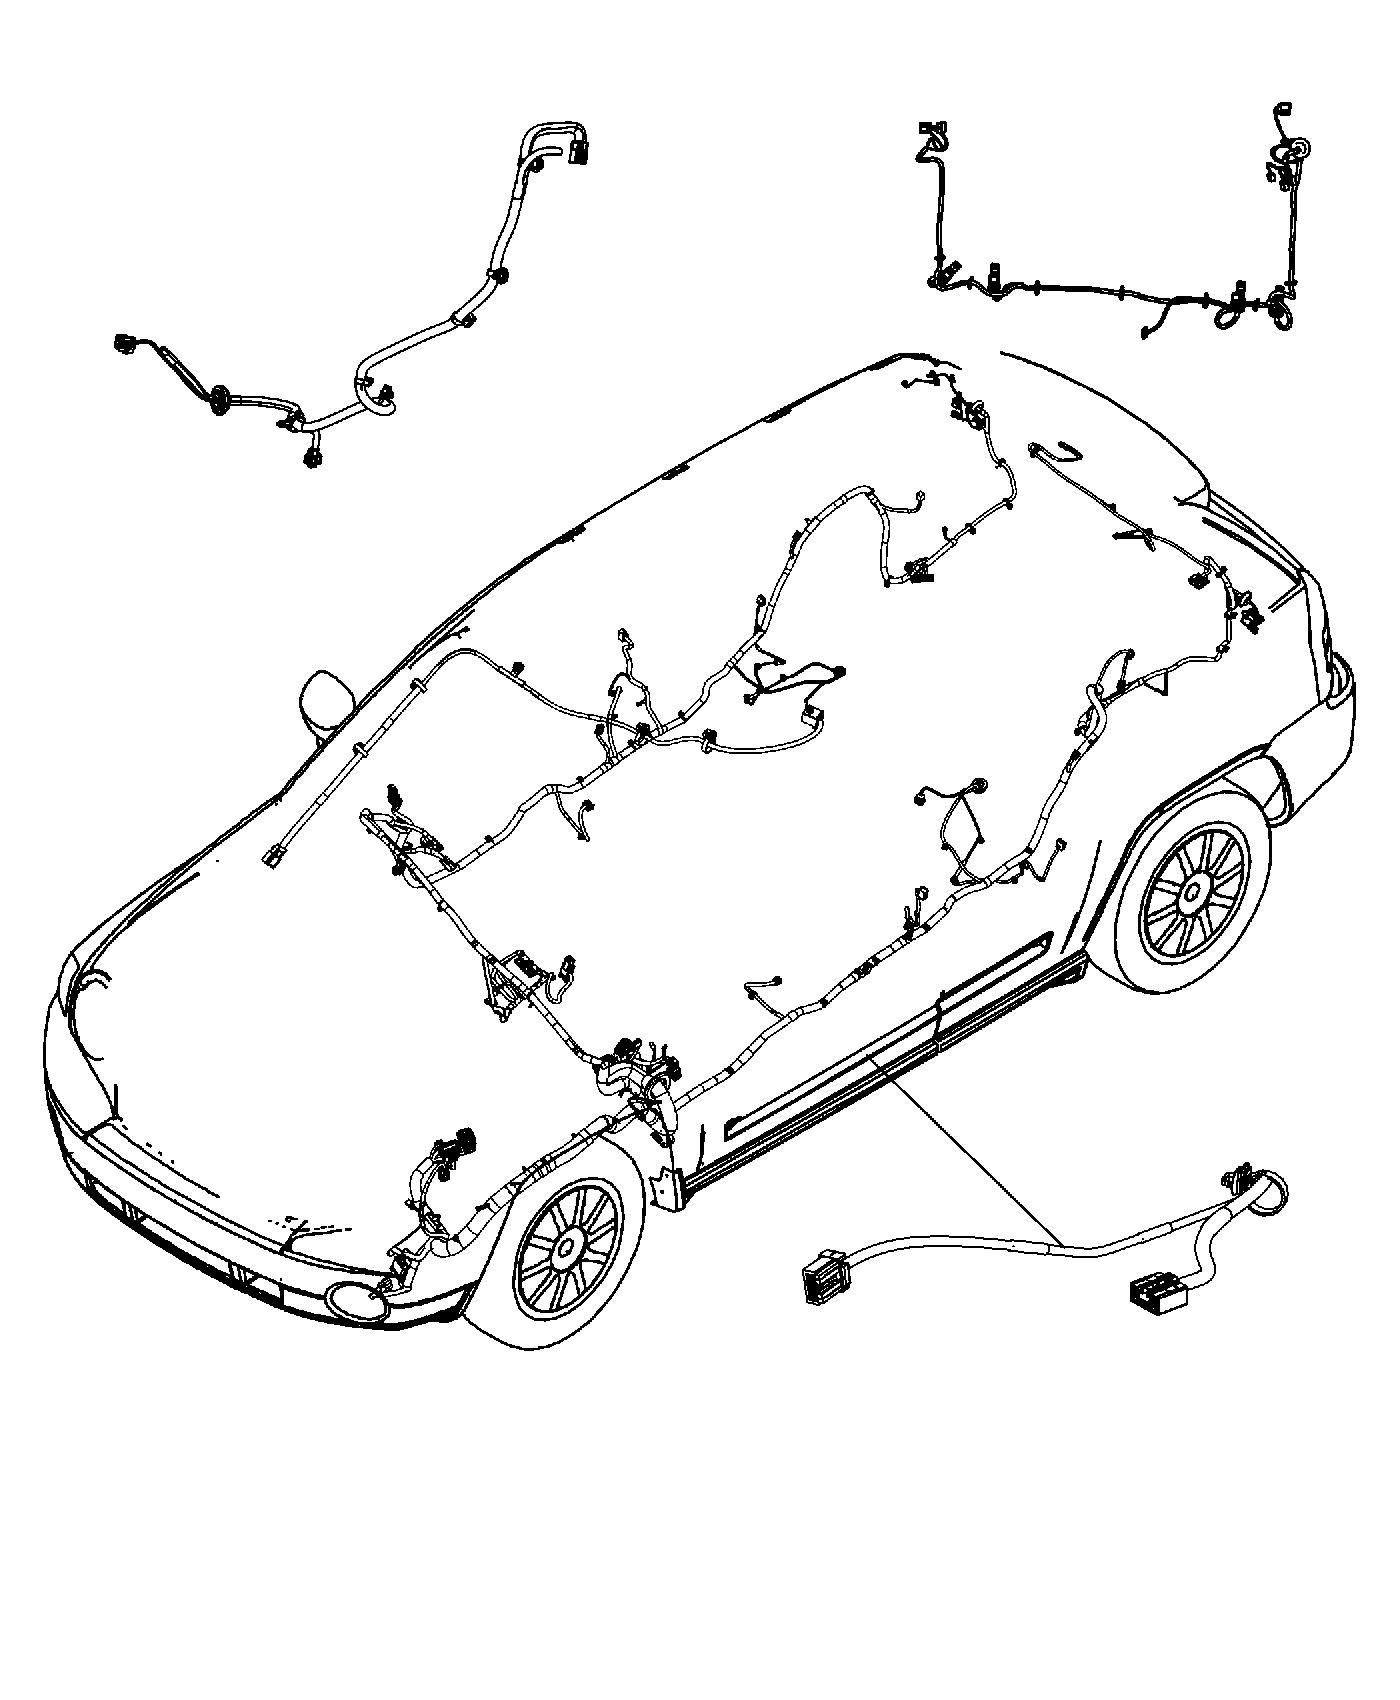 Jeep Compass Wiring Unified Body Air Bags Front